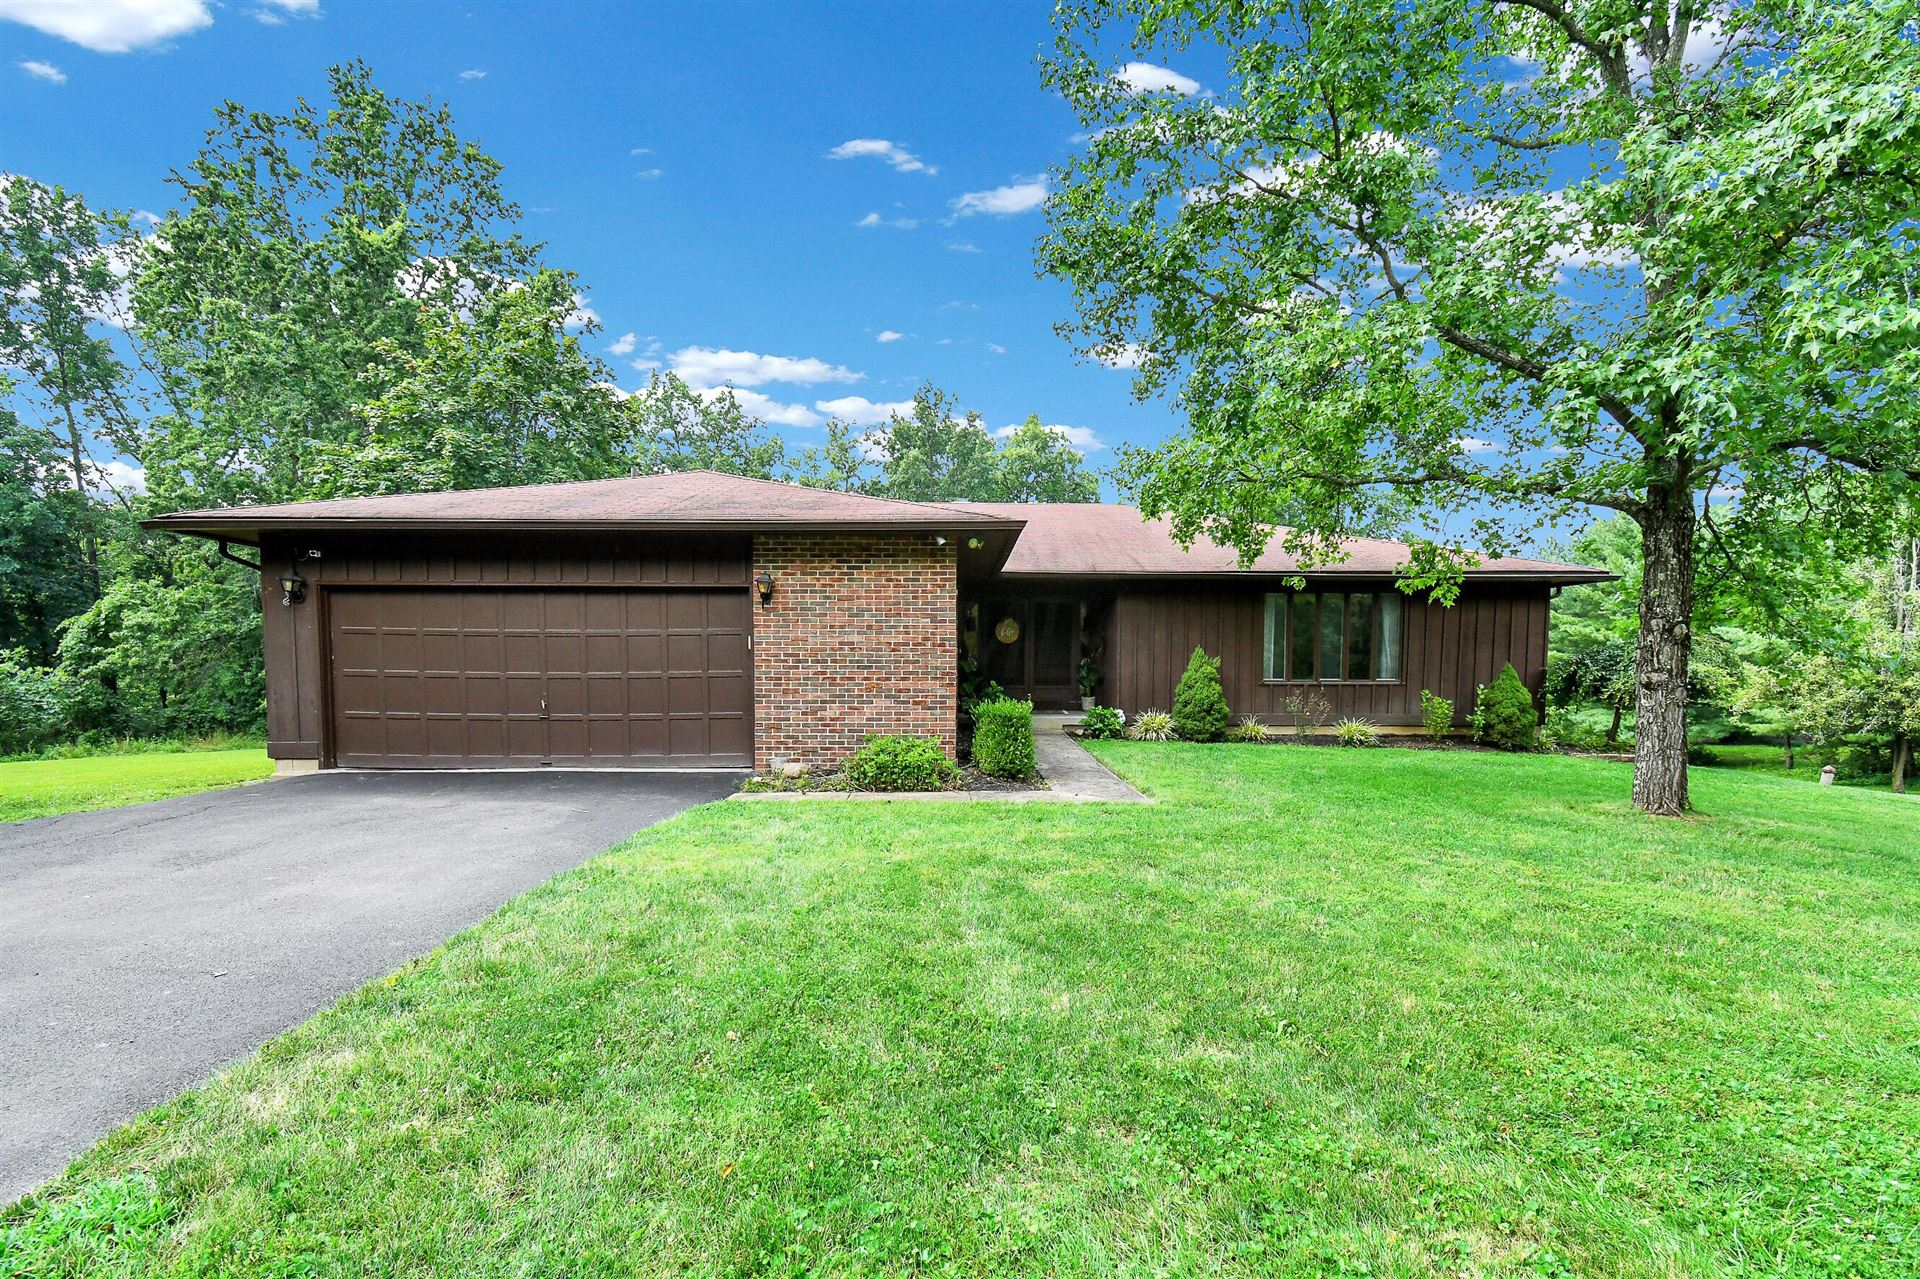 Photo of 8369 Manitou Drive, Westerville, OH 43081 (MLS # 221029097)